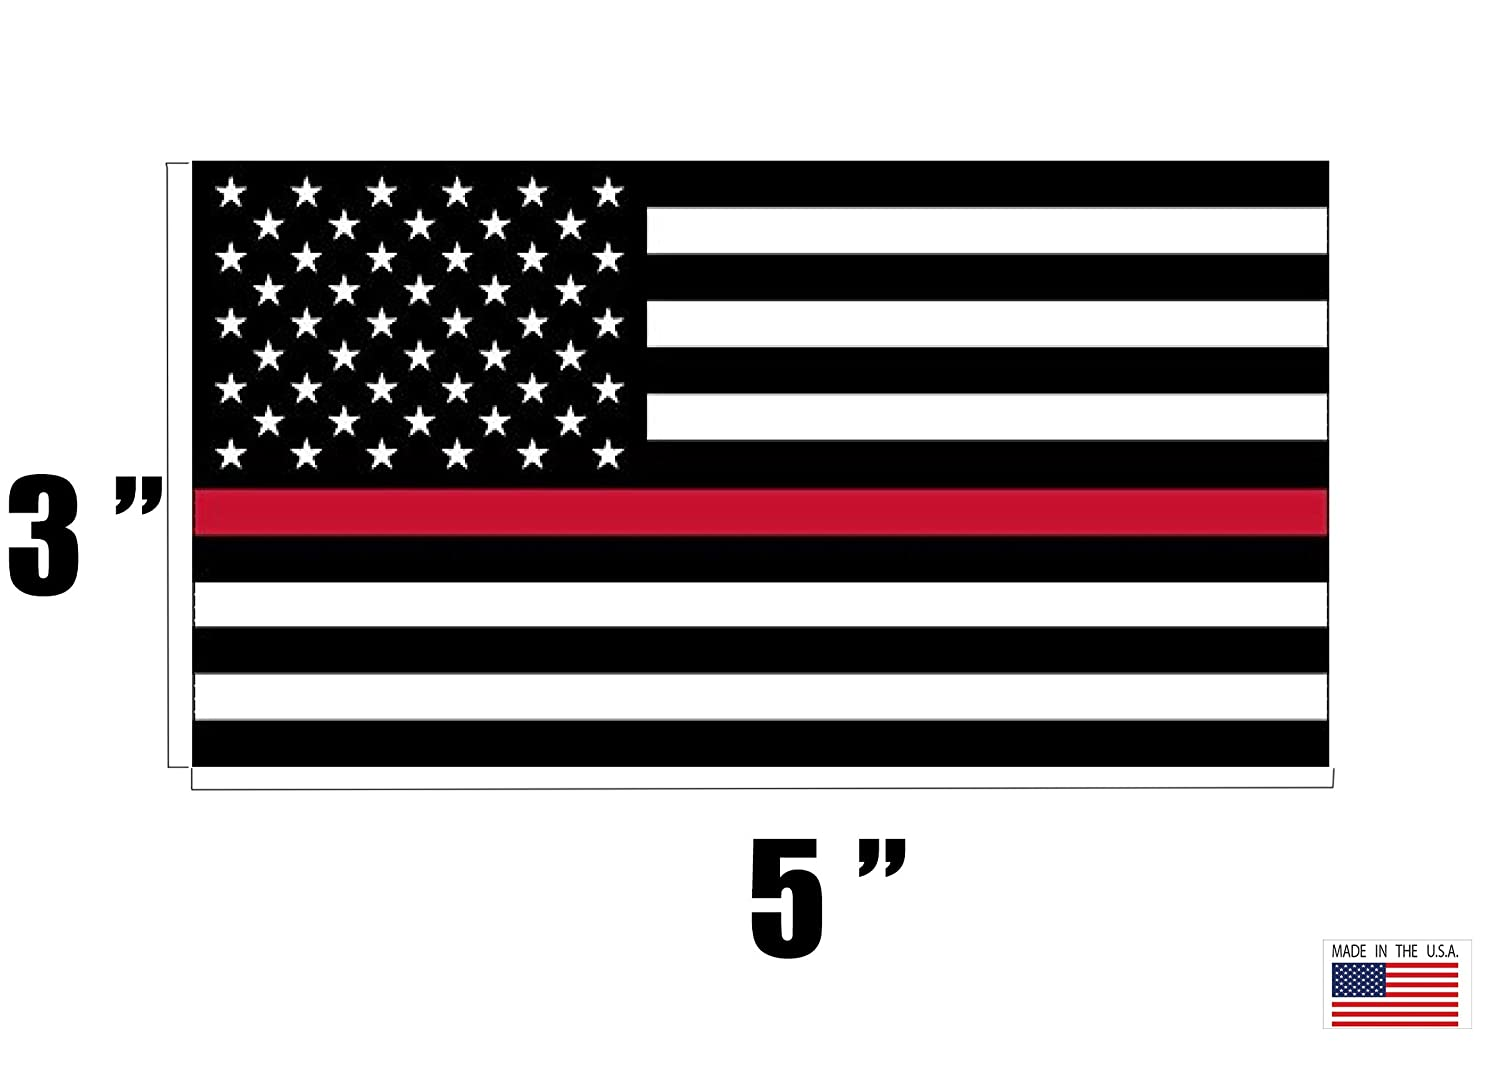 Rogue River Tactical Thin Red Line Firefighter Flag Sticker Support of Fire Fighters Fireman EMT USA RDW61